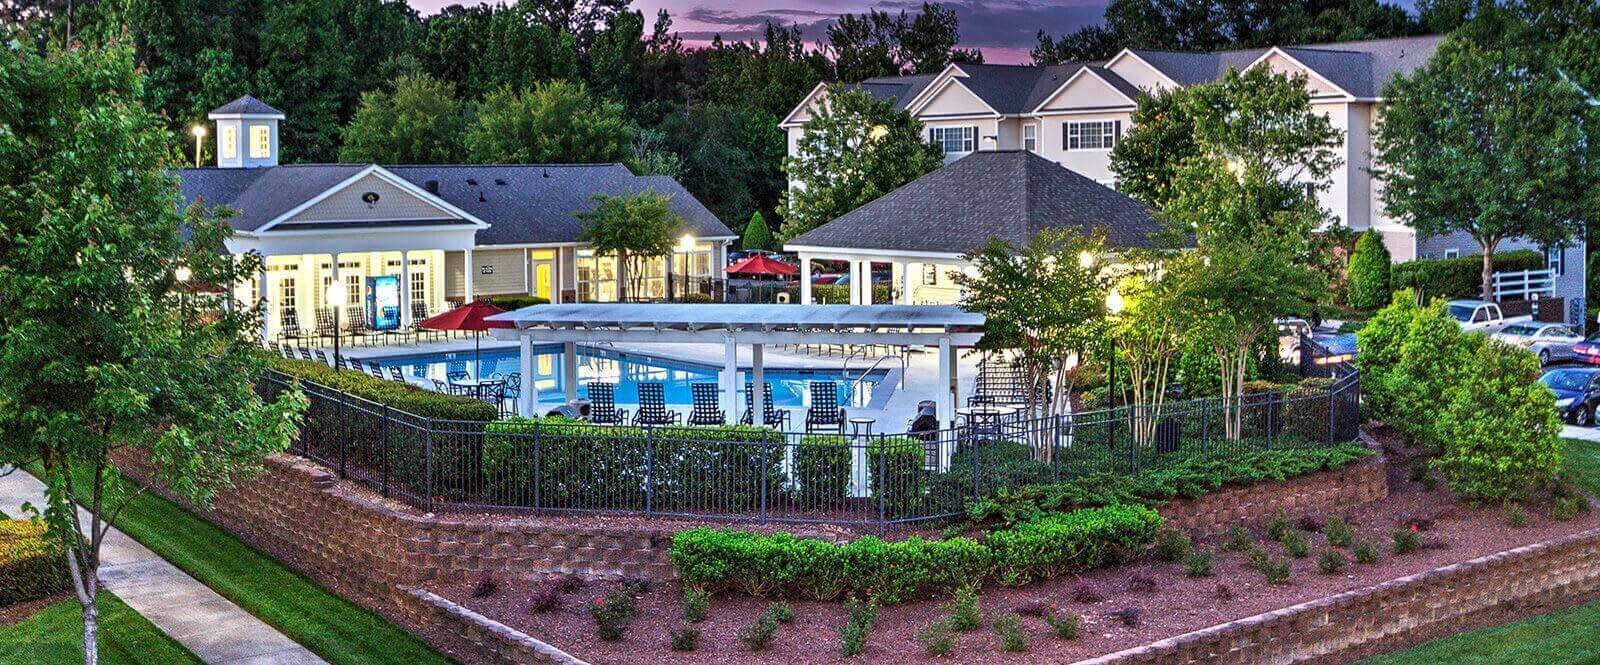 Professionally Maintained Community at Abberly Grove Apartment Homes by HHHunt, Raleigh